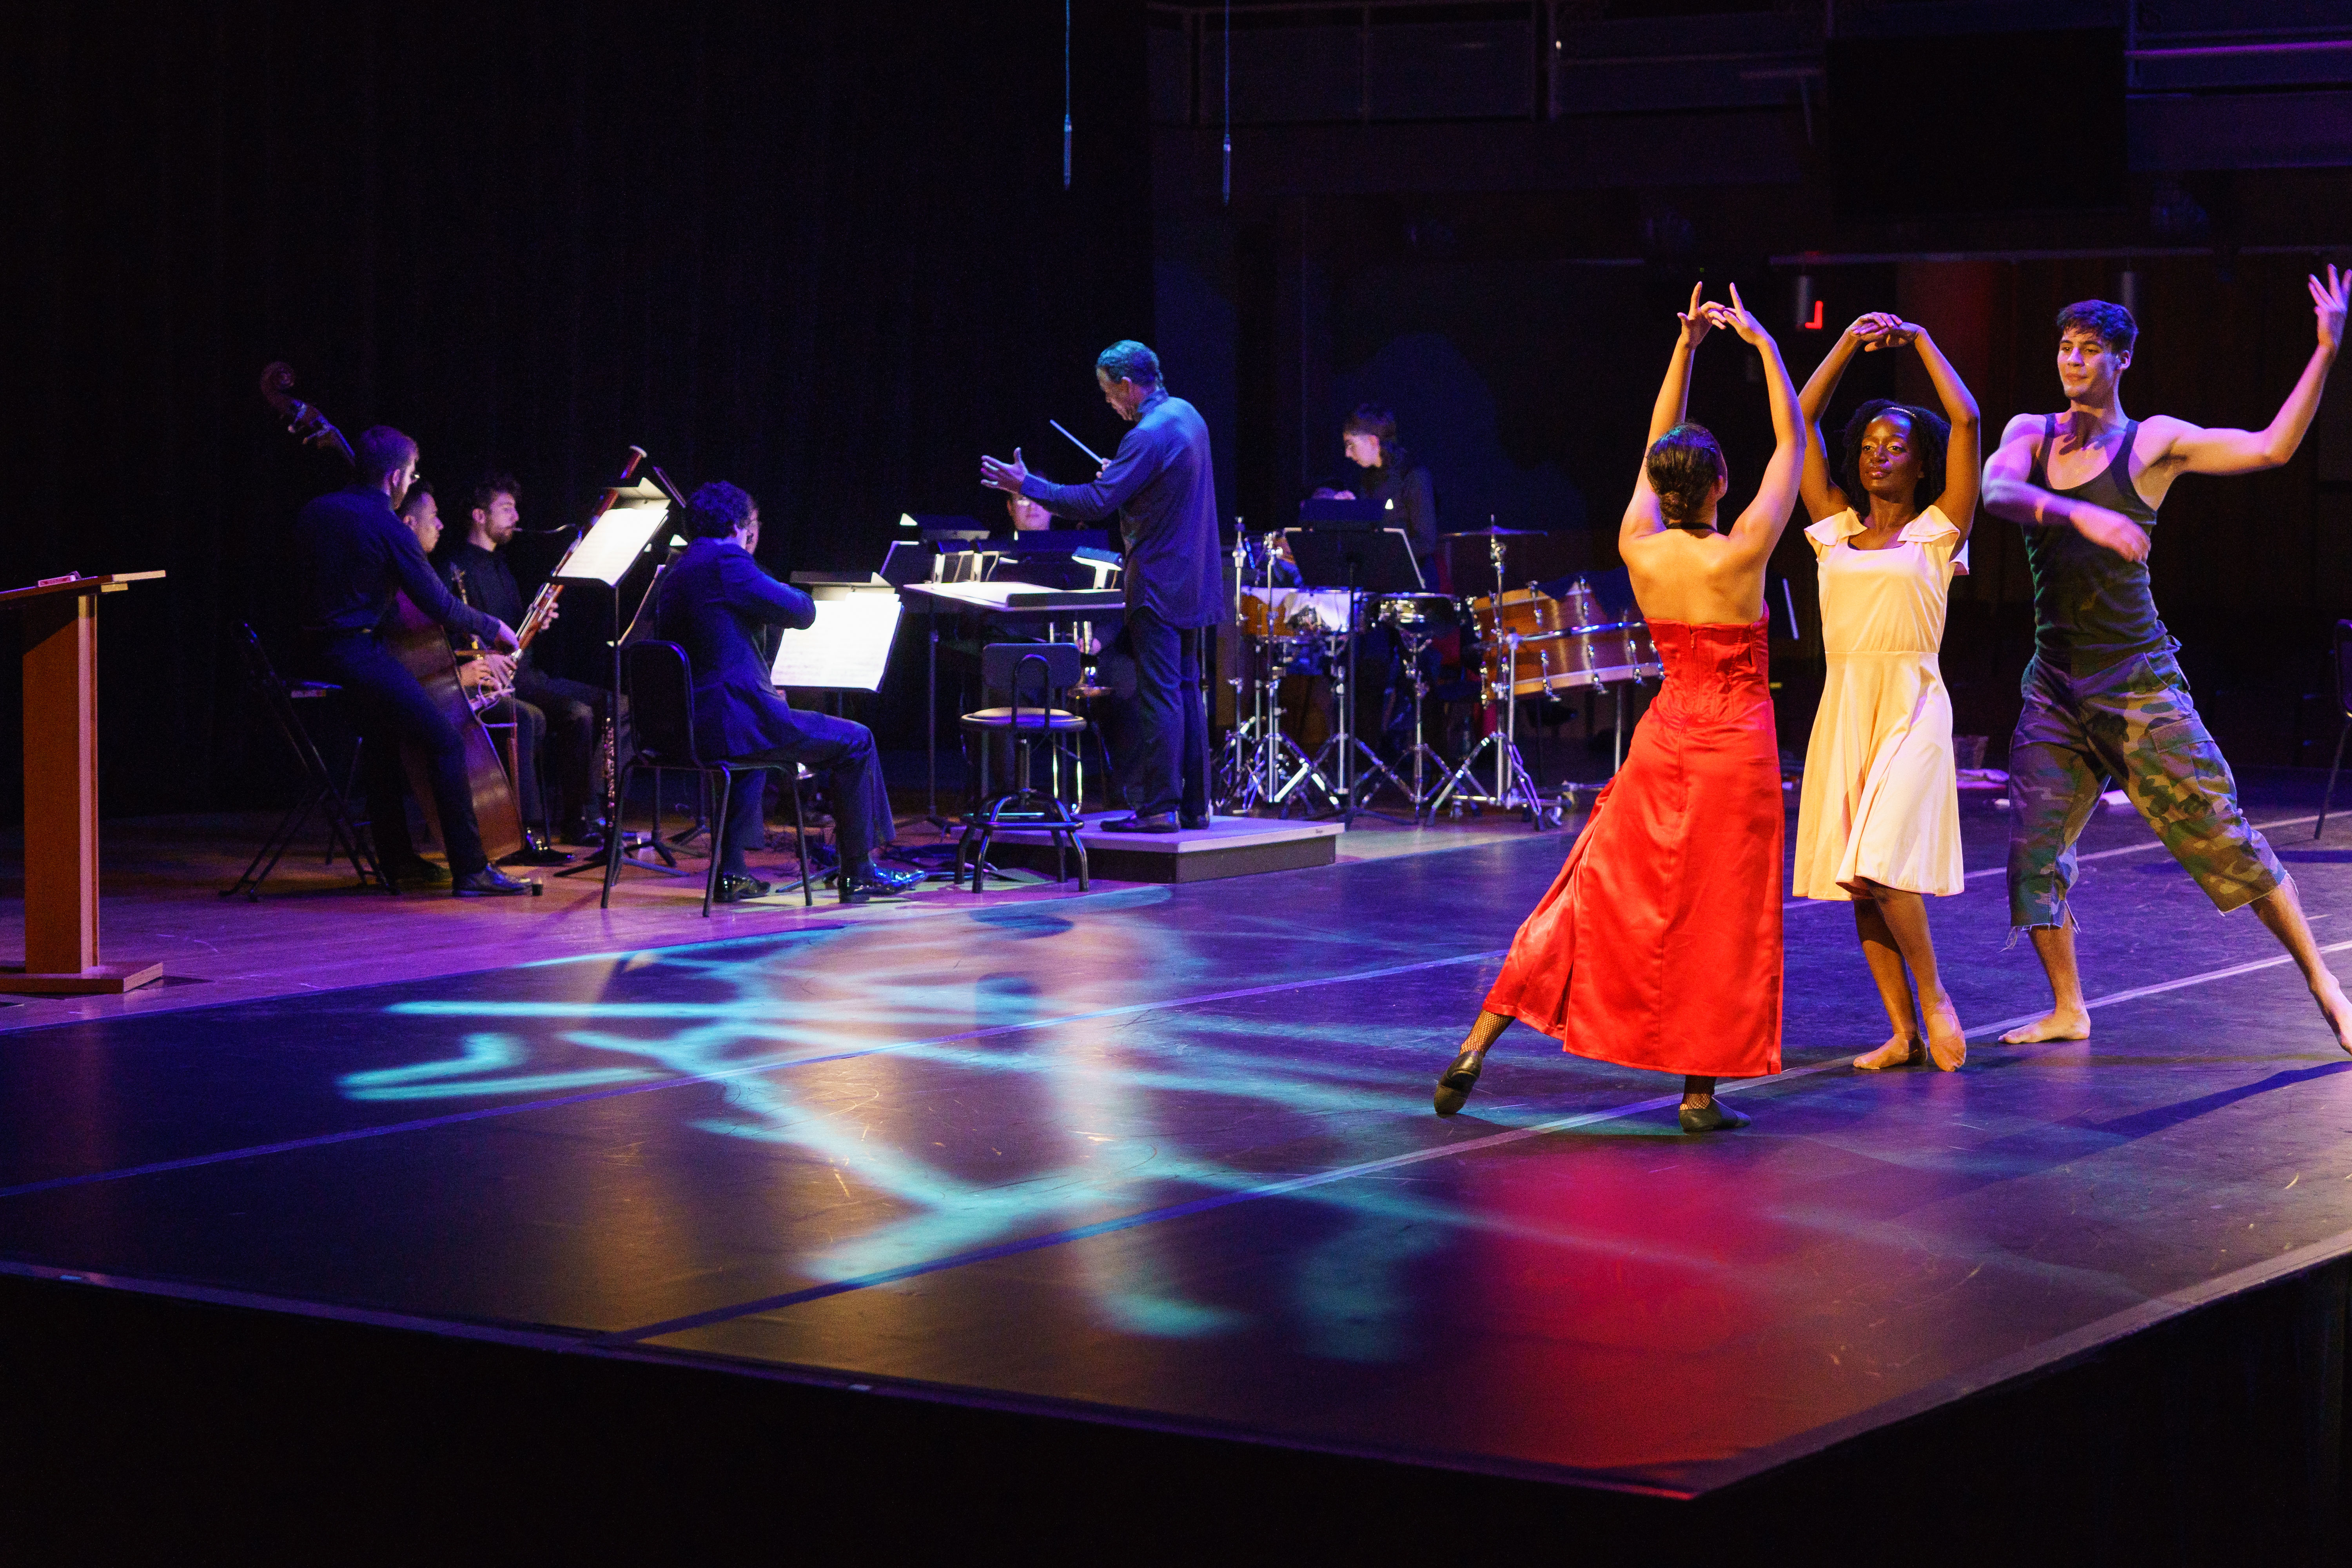 Temple students dance on stage with orchestra musicians and a conductor performing behind them at the Temple Performing Arts Center.